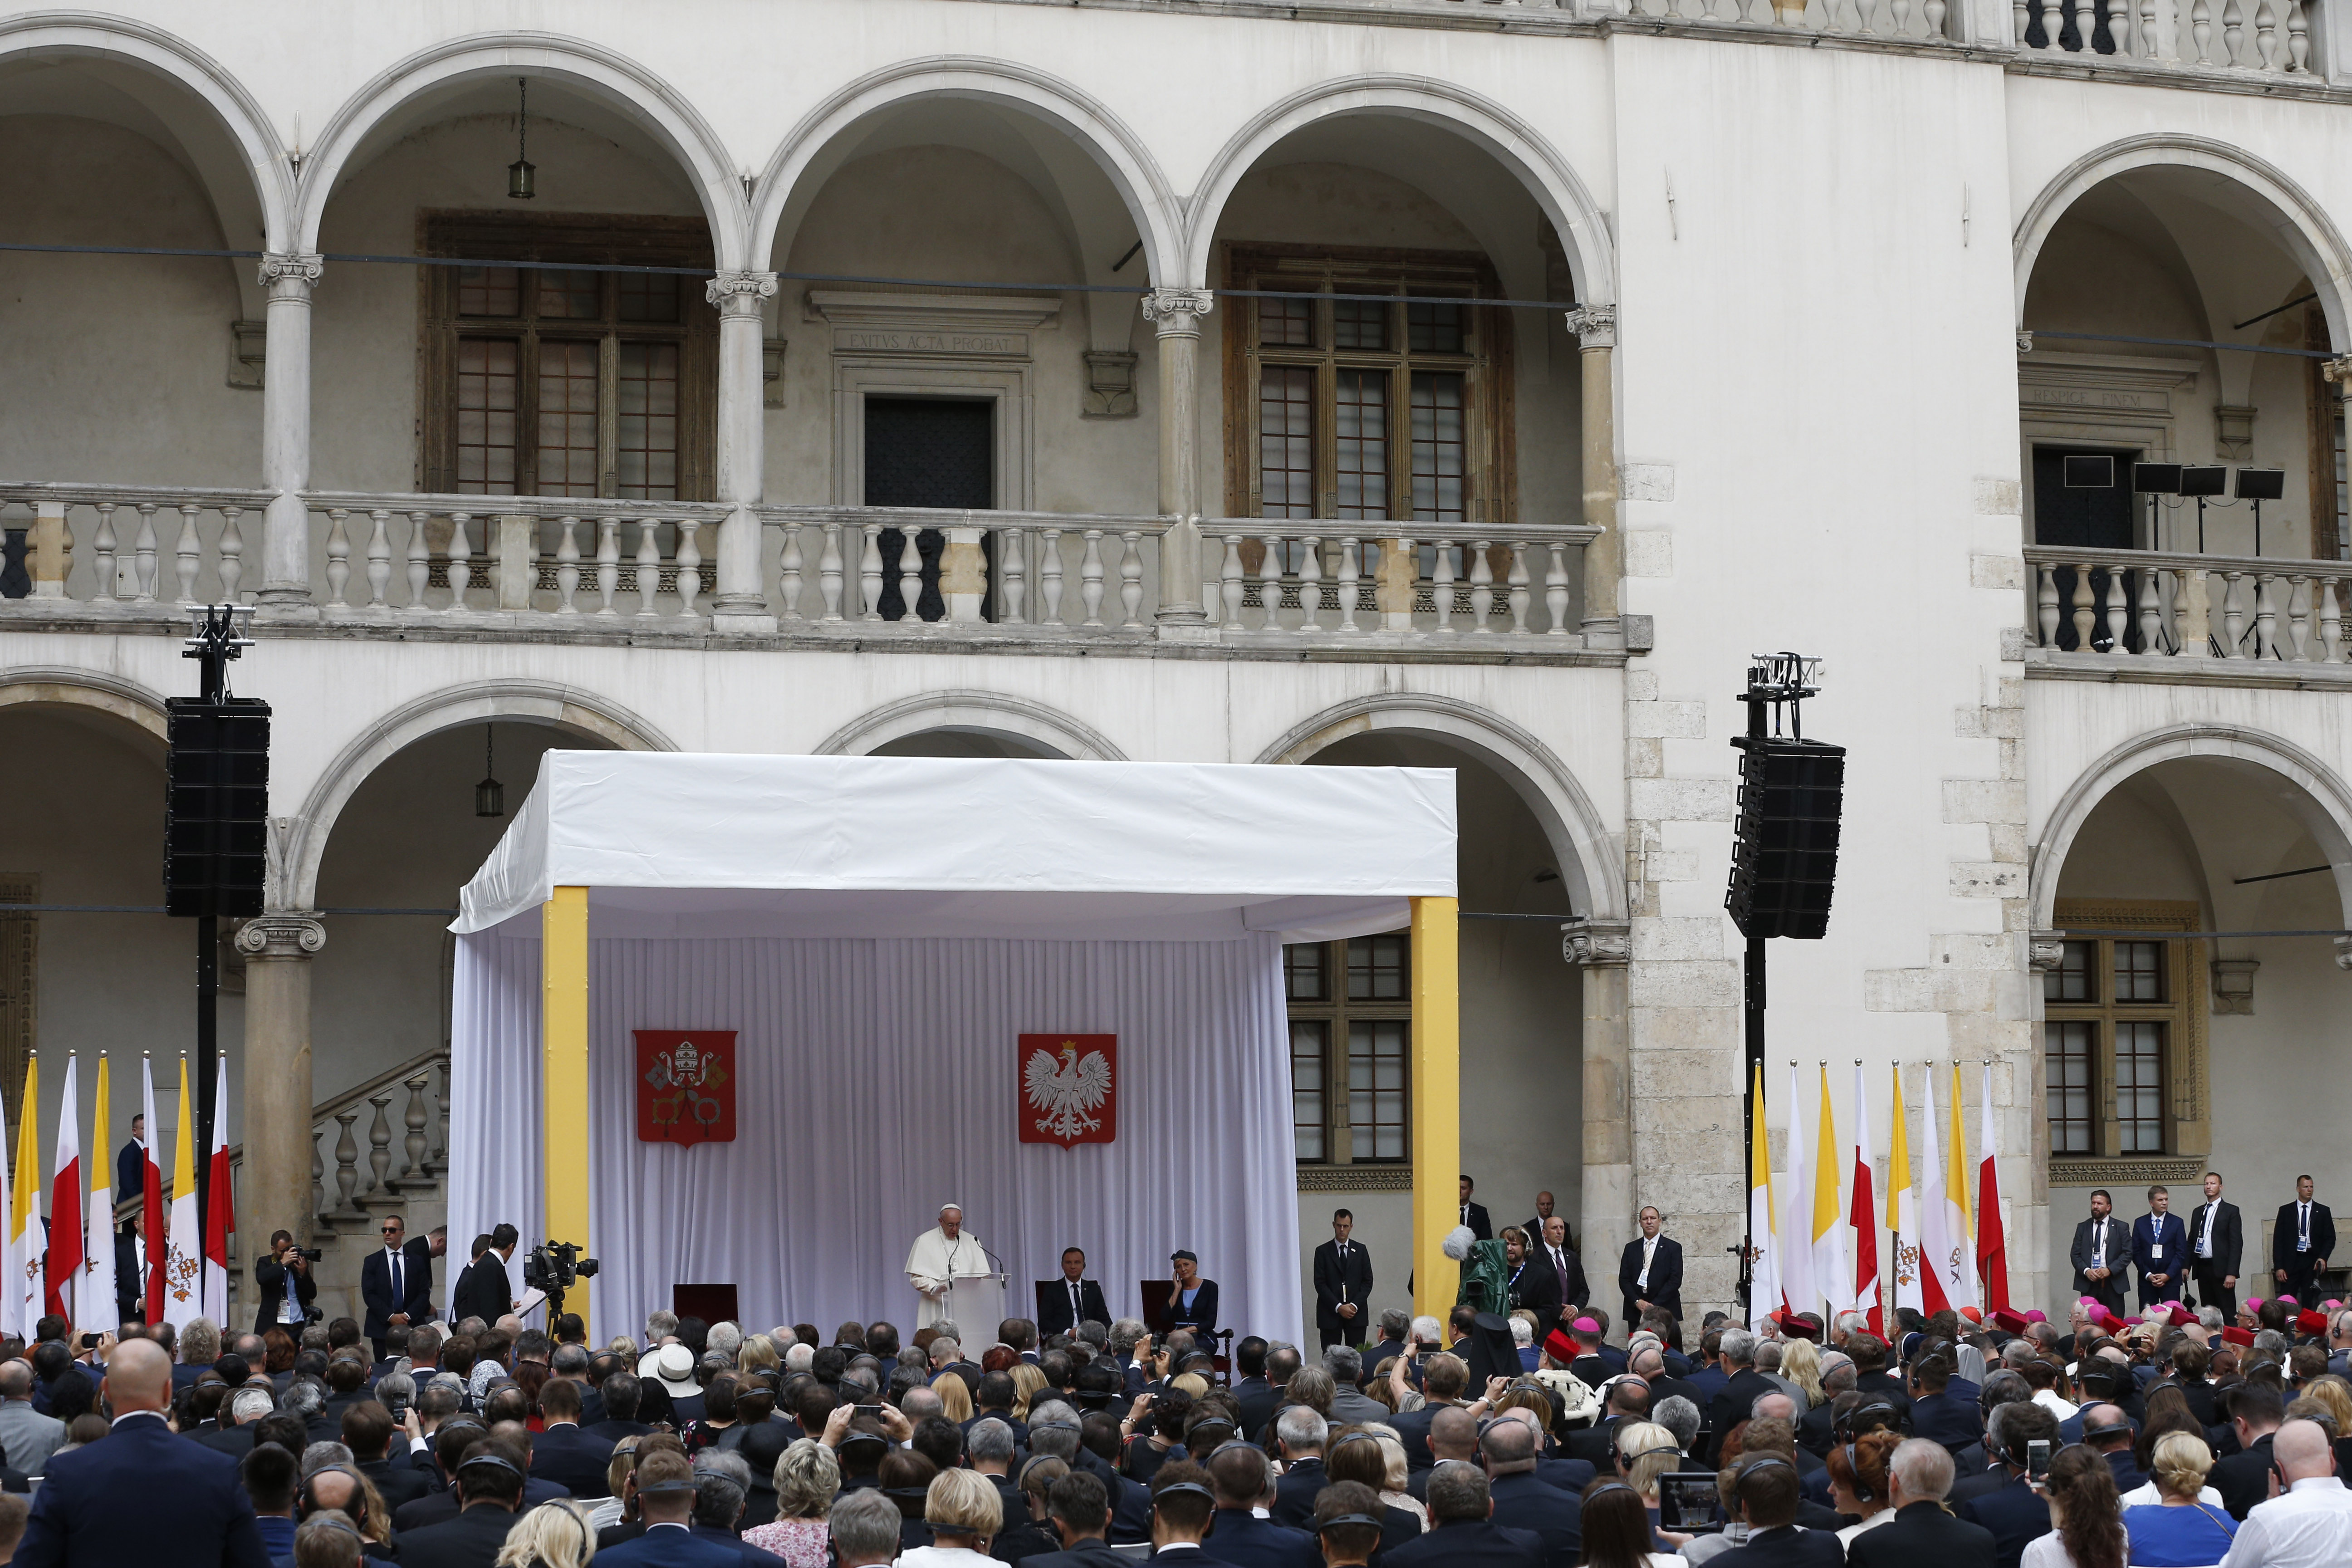 Pope Francis speaking at Wawel Royal Castle